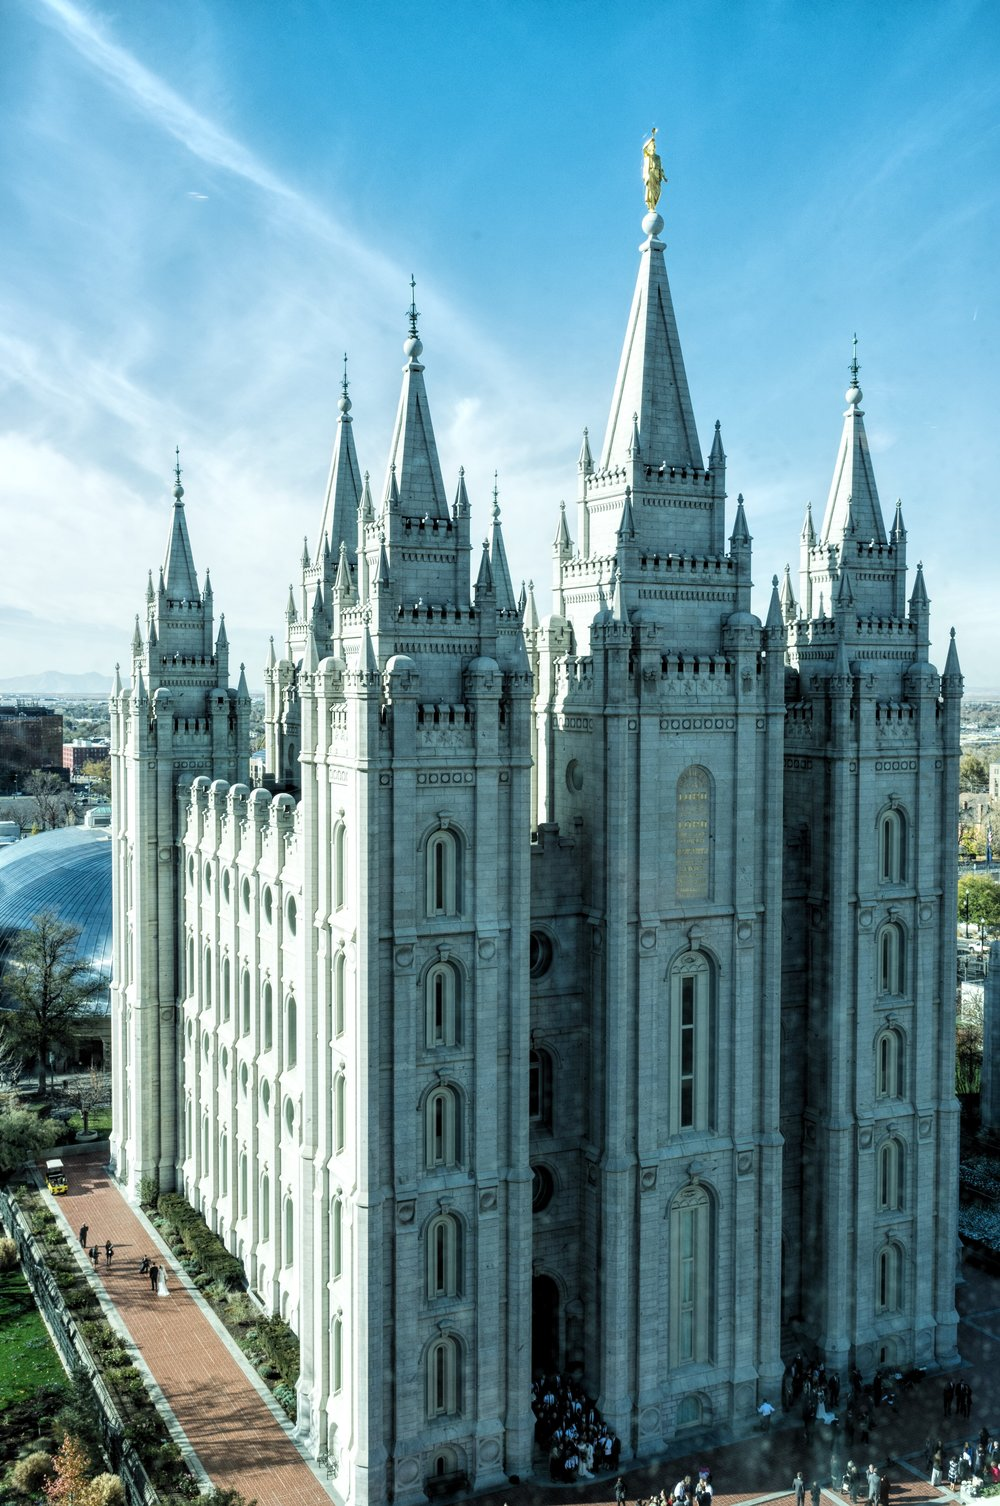 The Salt Lake City Mormon Temple. How many brides do you spy down below?